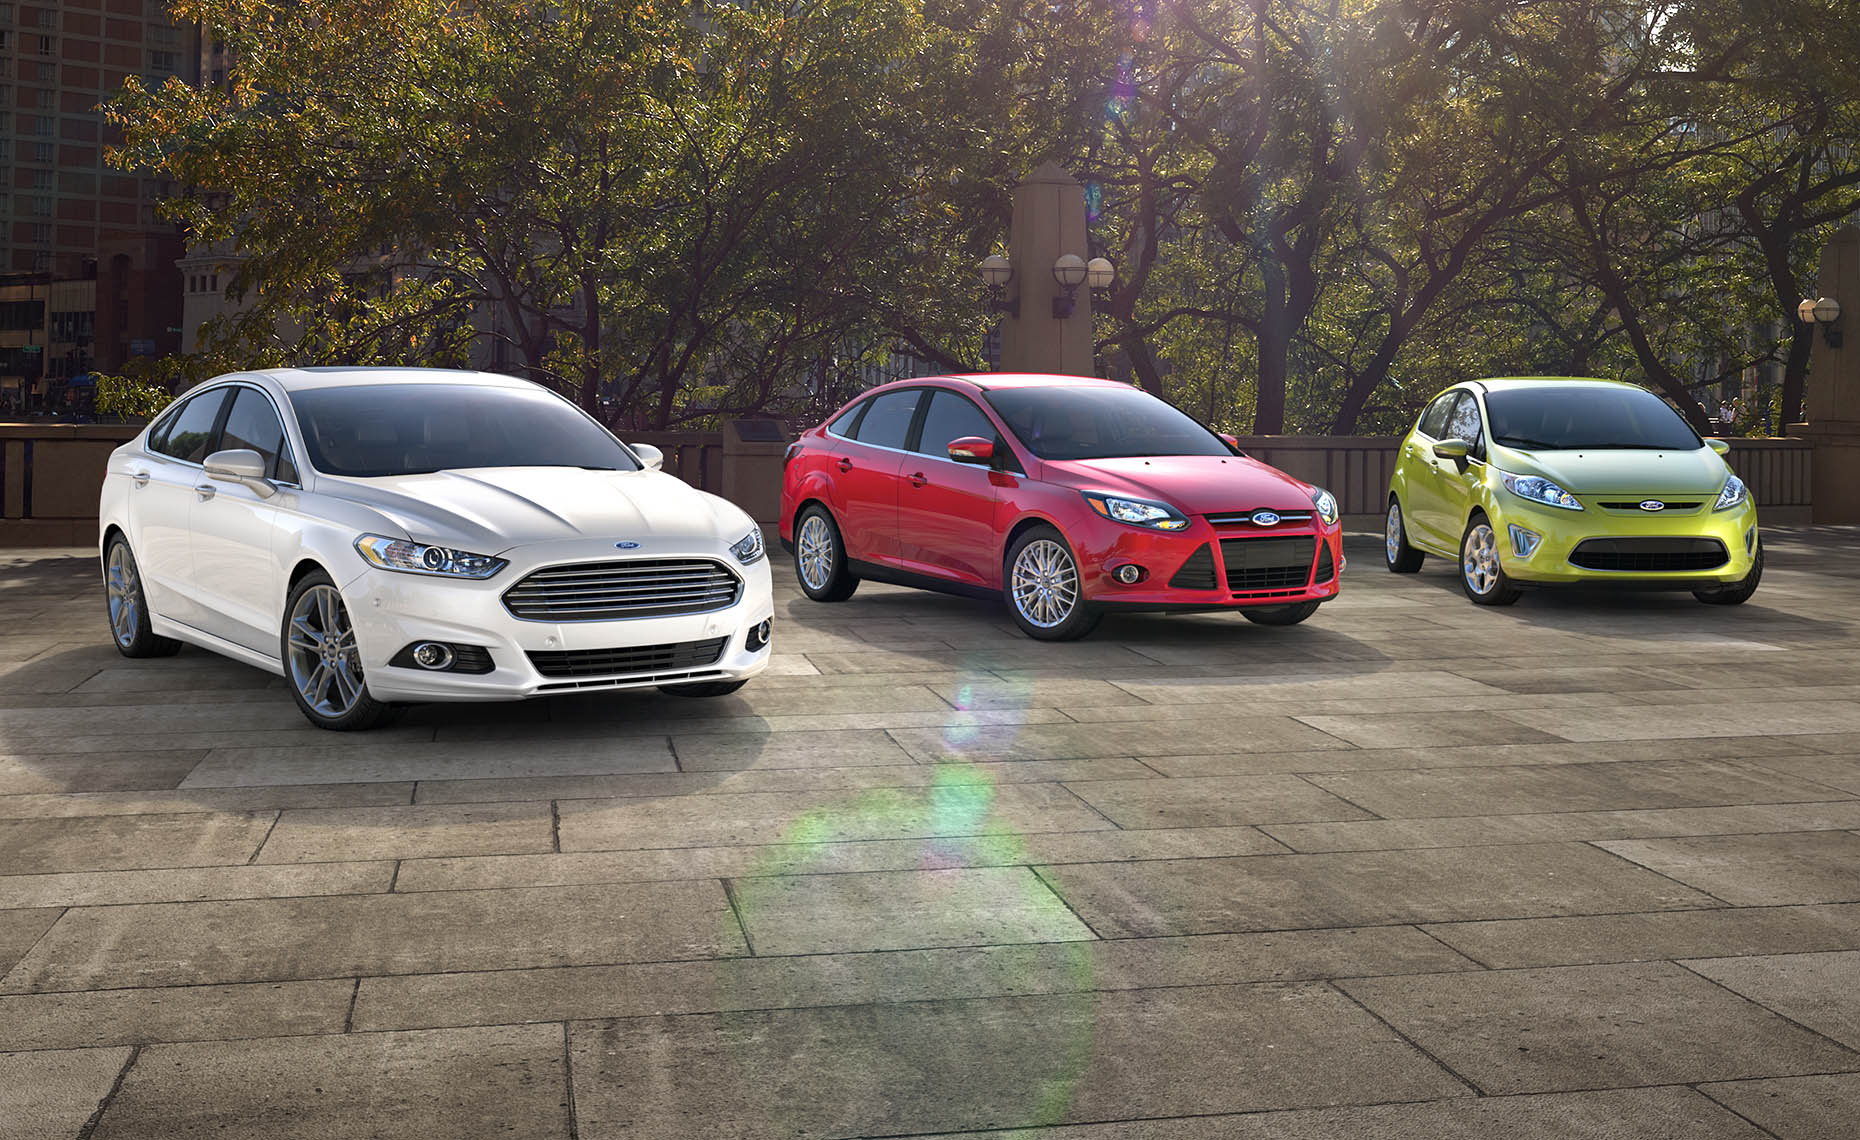 2013 Ford FUSION 2013 Ford FOCUS 2013 Ford FIESTA.jpg